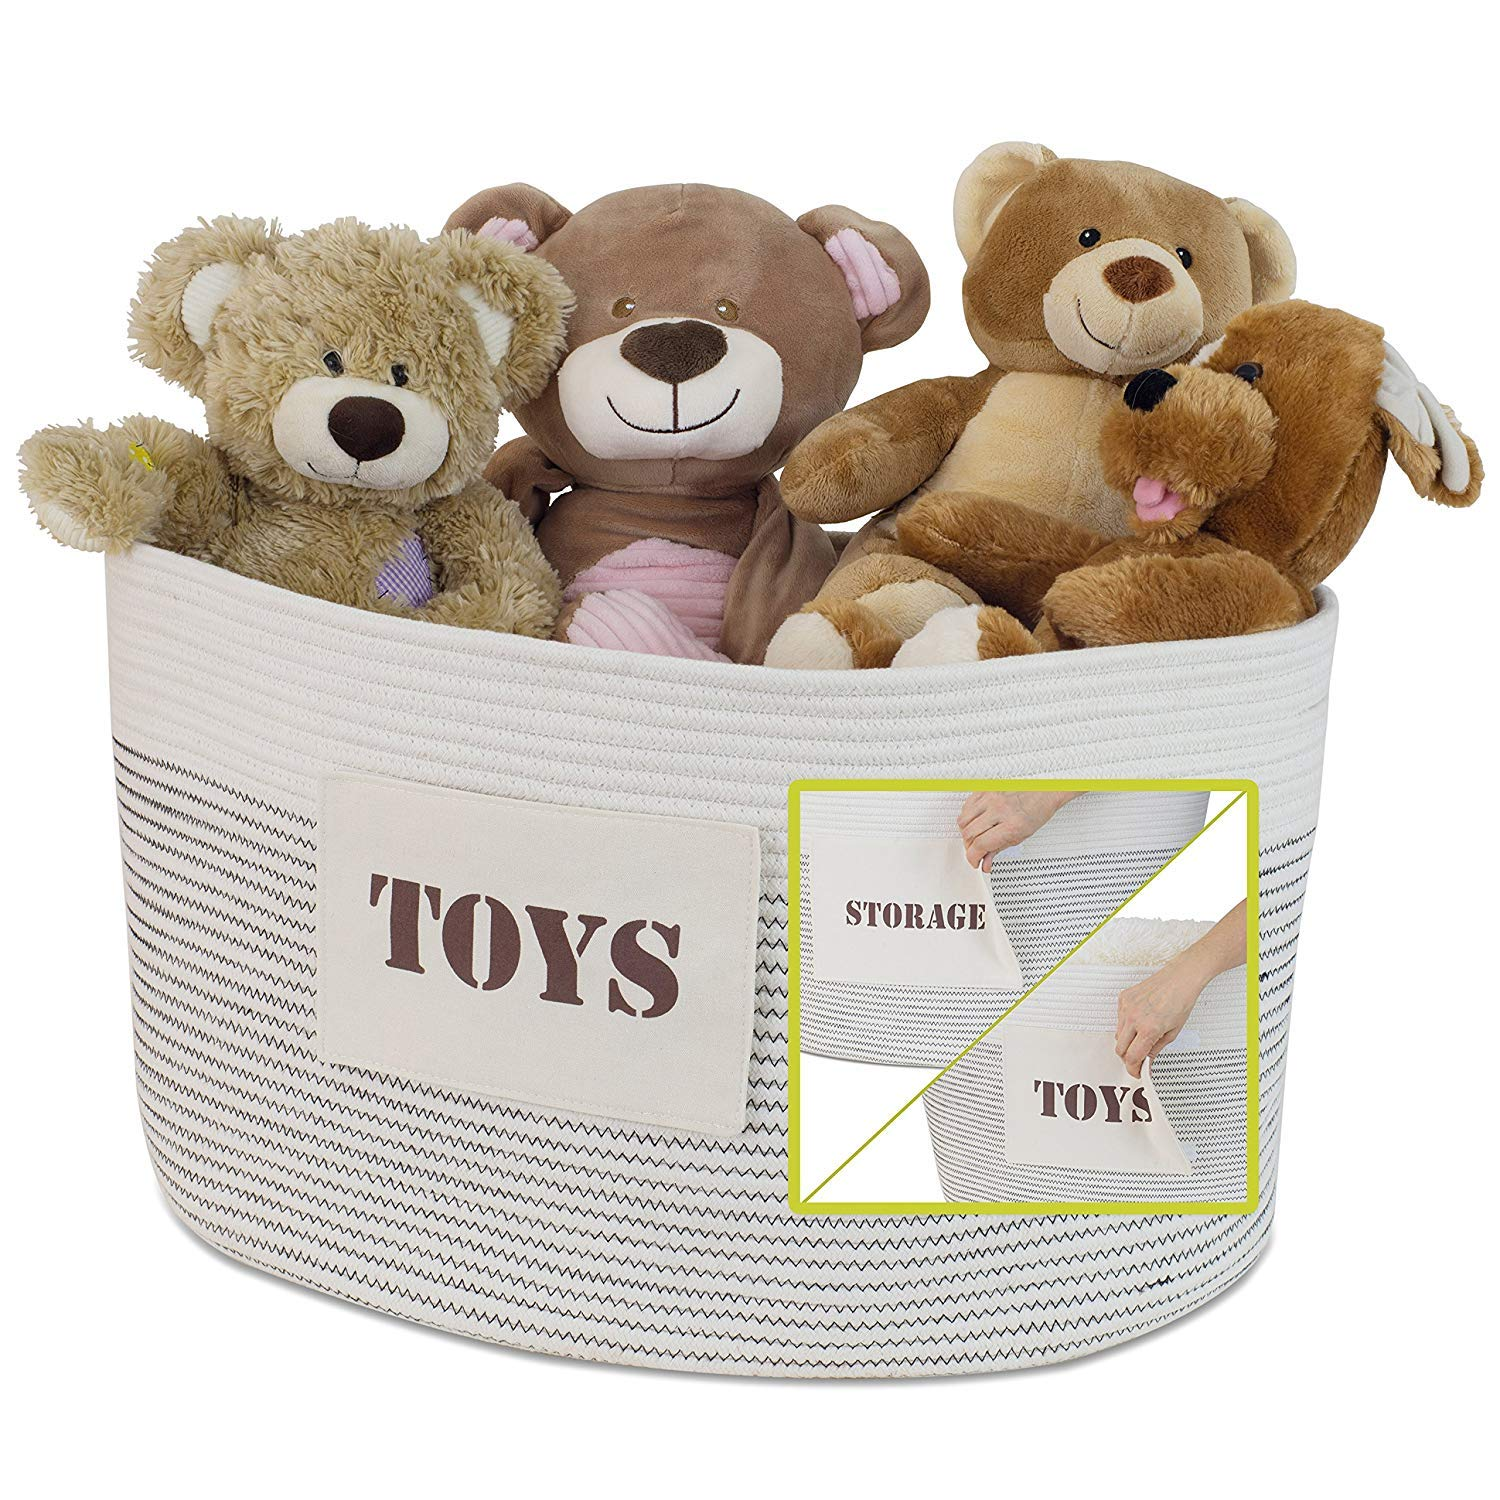 Emopeak Storage Basket – Cotton Rope with STORAGE and TOYS Labels, Beautiful Color Design, Home Decor addition for Toy Storage, Blankets, Laundry, Games